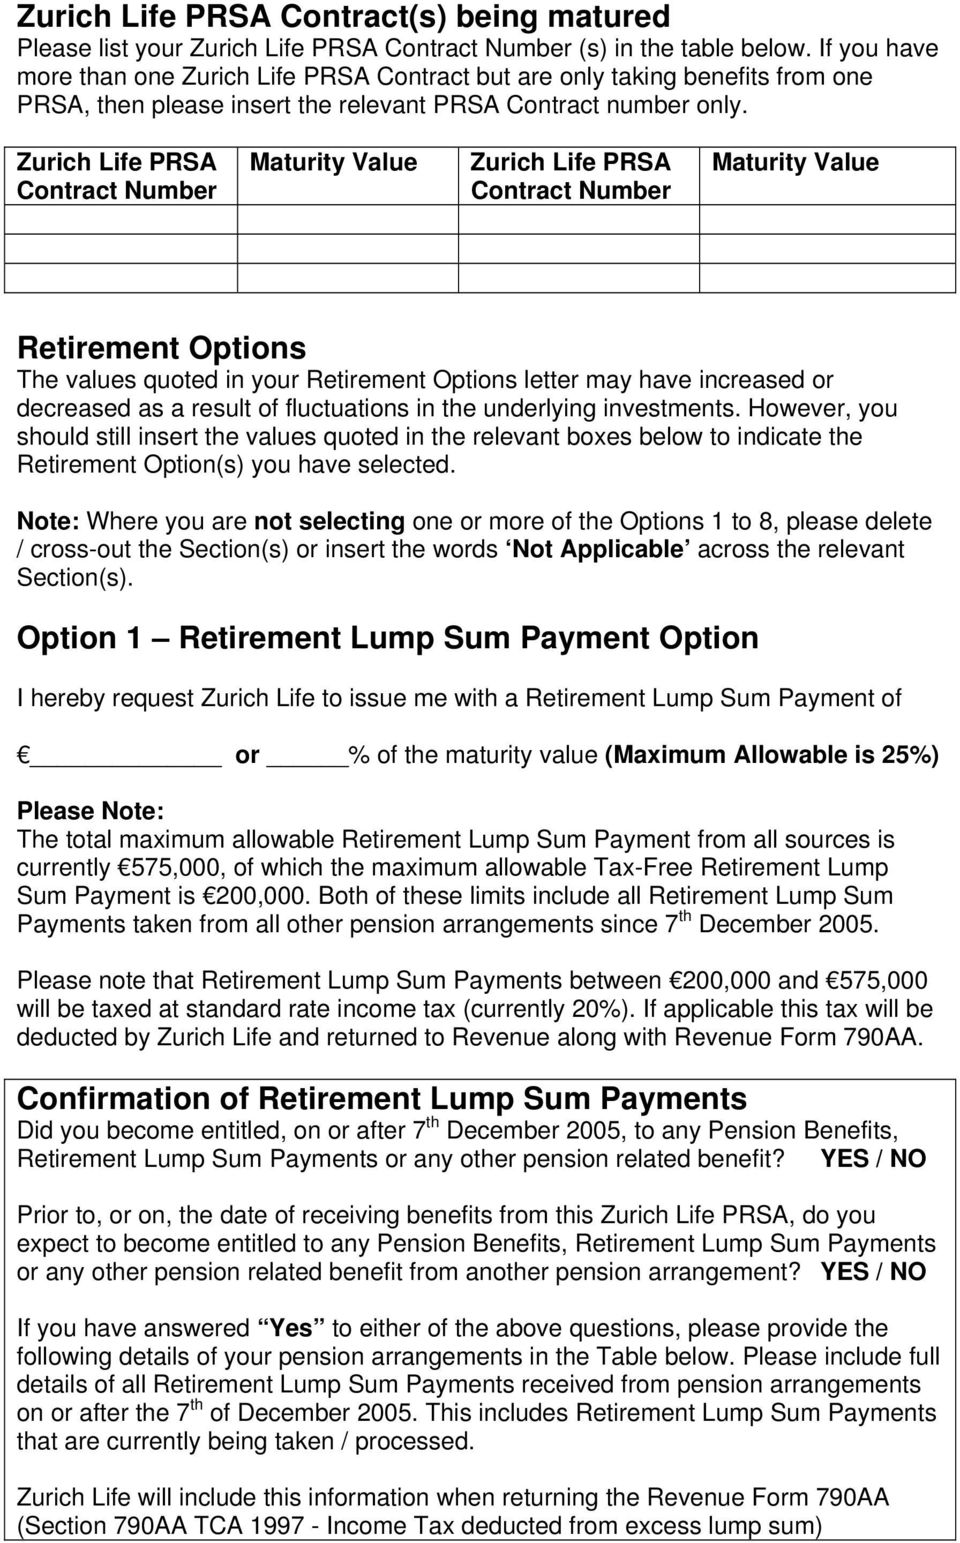 Zurich Life PRSA Contract Number Maturity Value Zurich Life PRSA Contract Number Maturity Value Retirement Options The values quoted in your Retirement Options letter may have increased or decreased